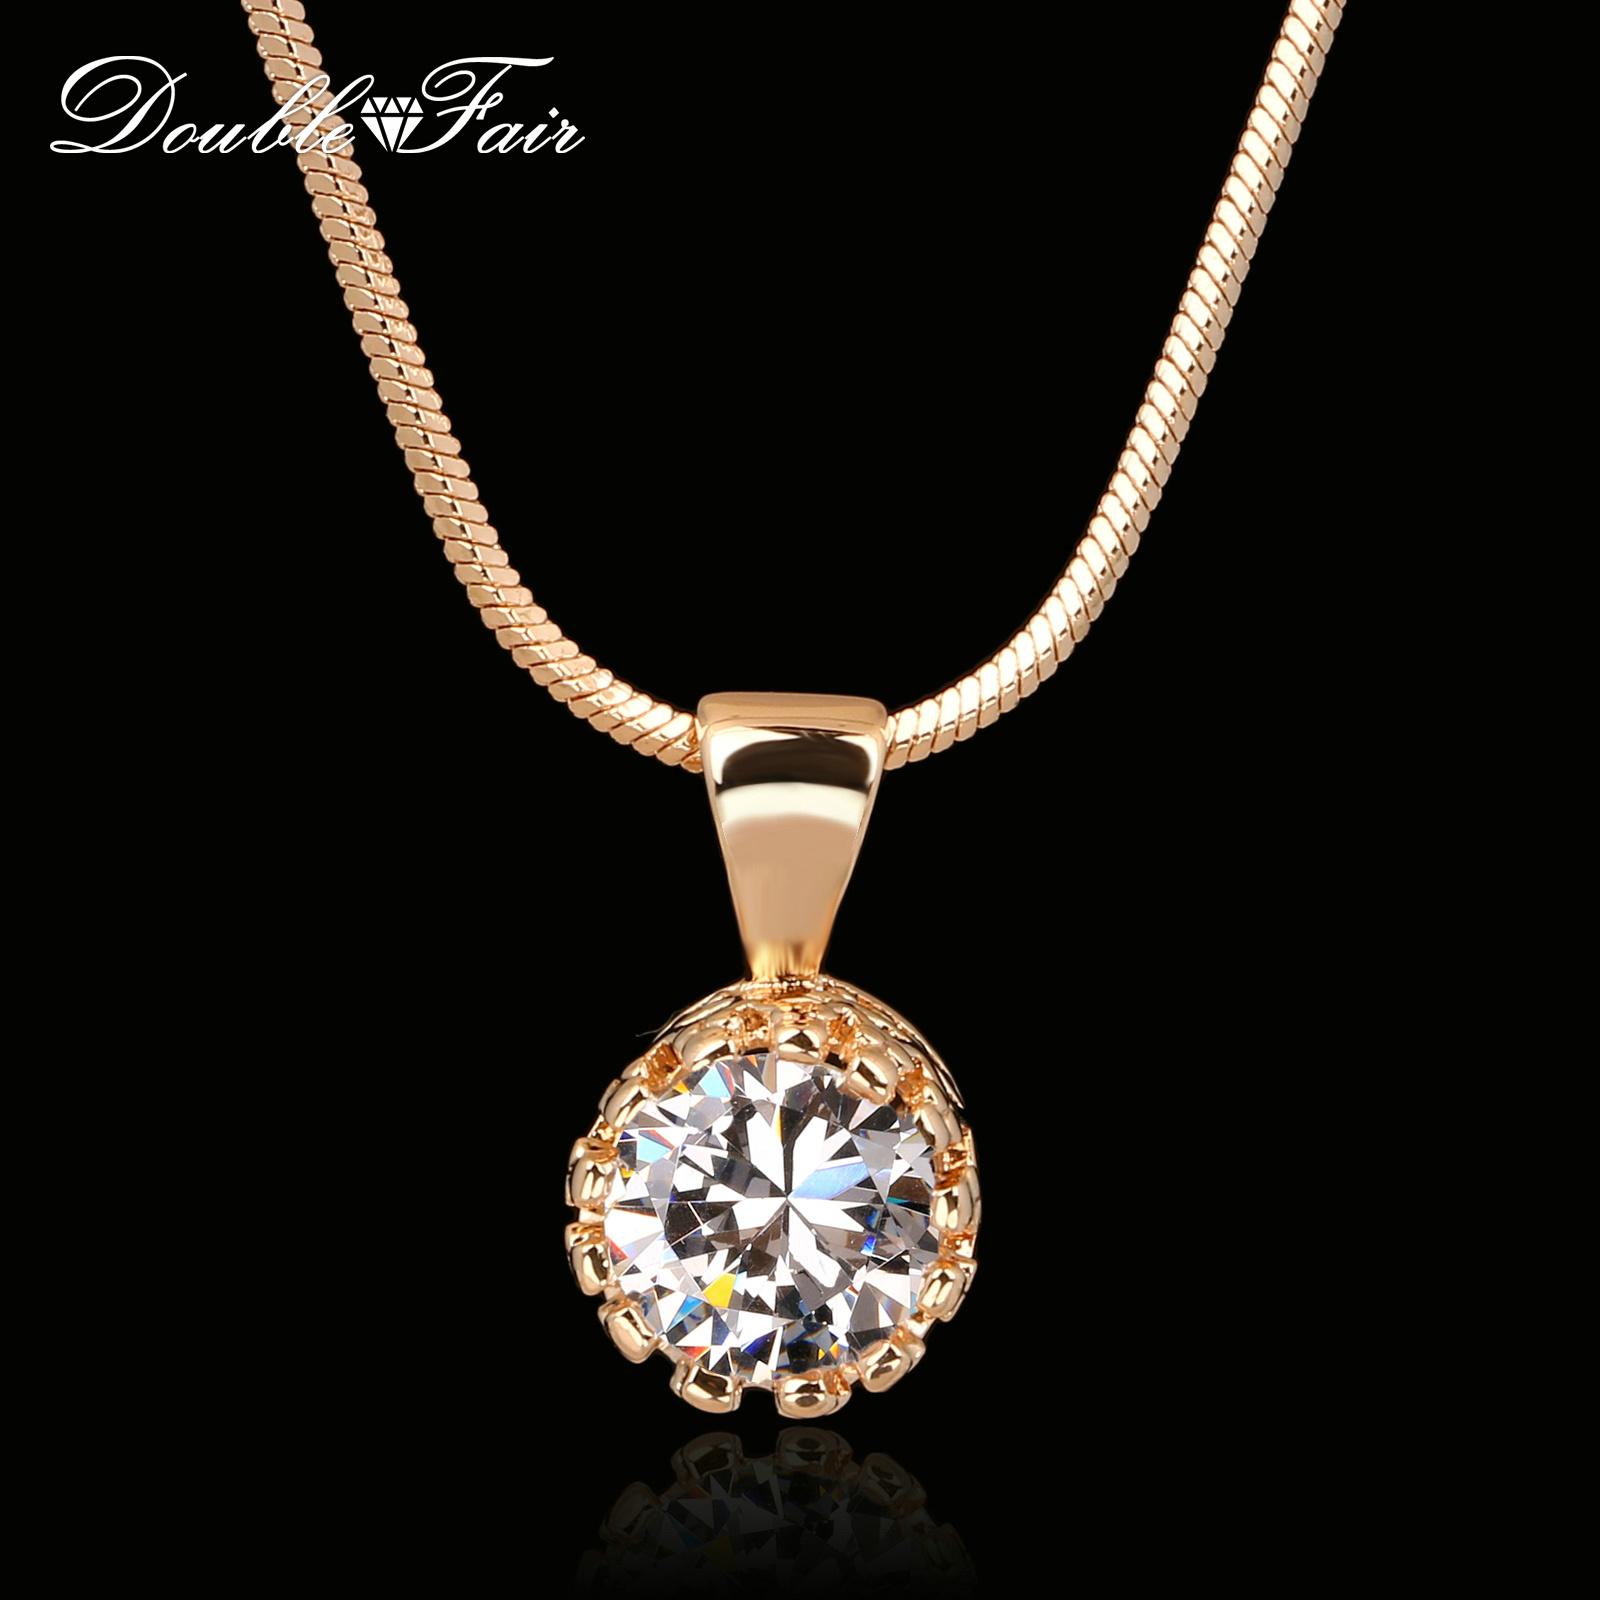 Double Fair Brand Unique Crown Cubic Zirconia Necklaces &Pendants Silver/Rose Gold Plated Chain Fashion Jewelry For Women DFN390(China (Mainland))